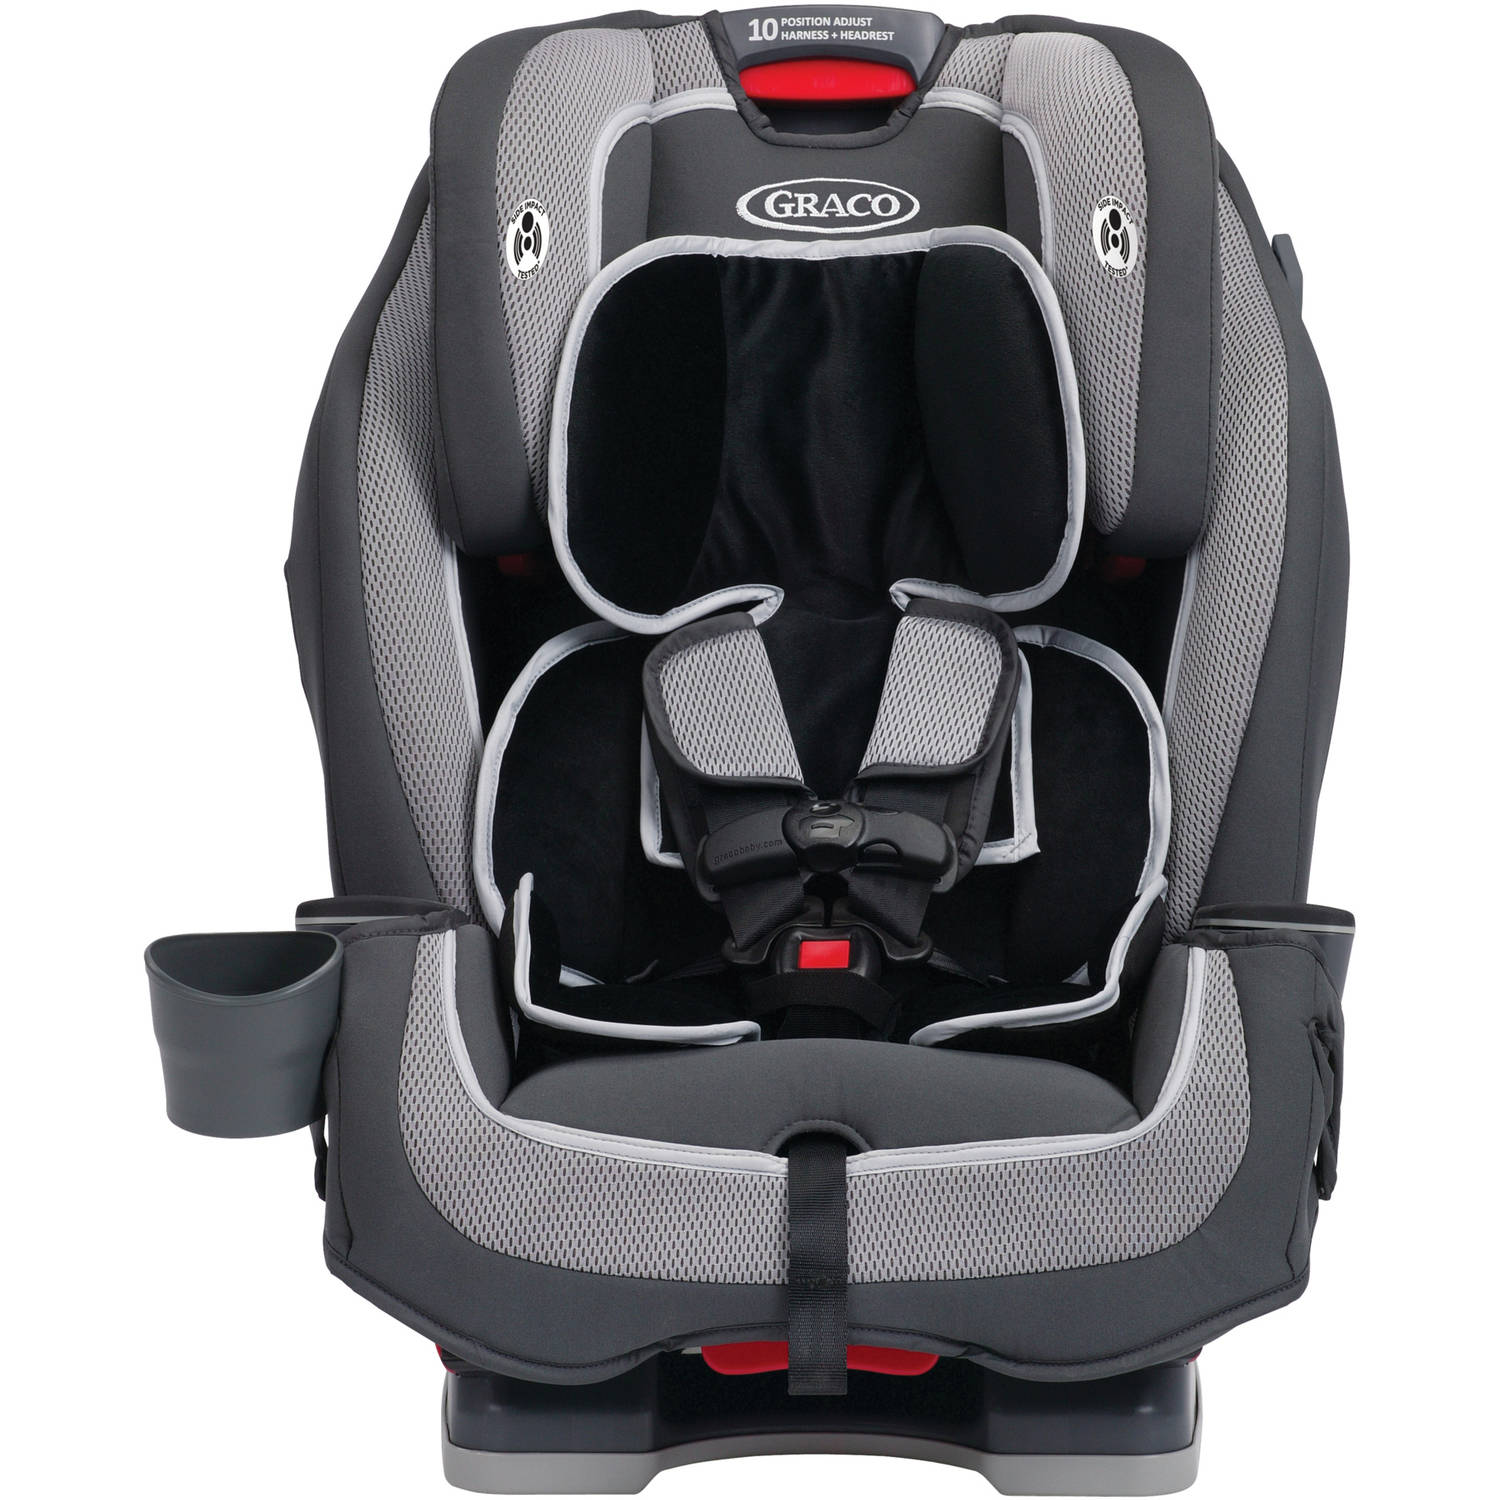 Graco Milestone All-in-One Car Seat Convertible Car Seat, Kline